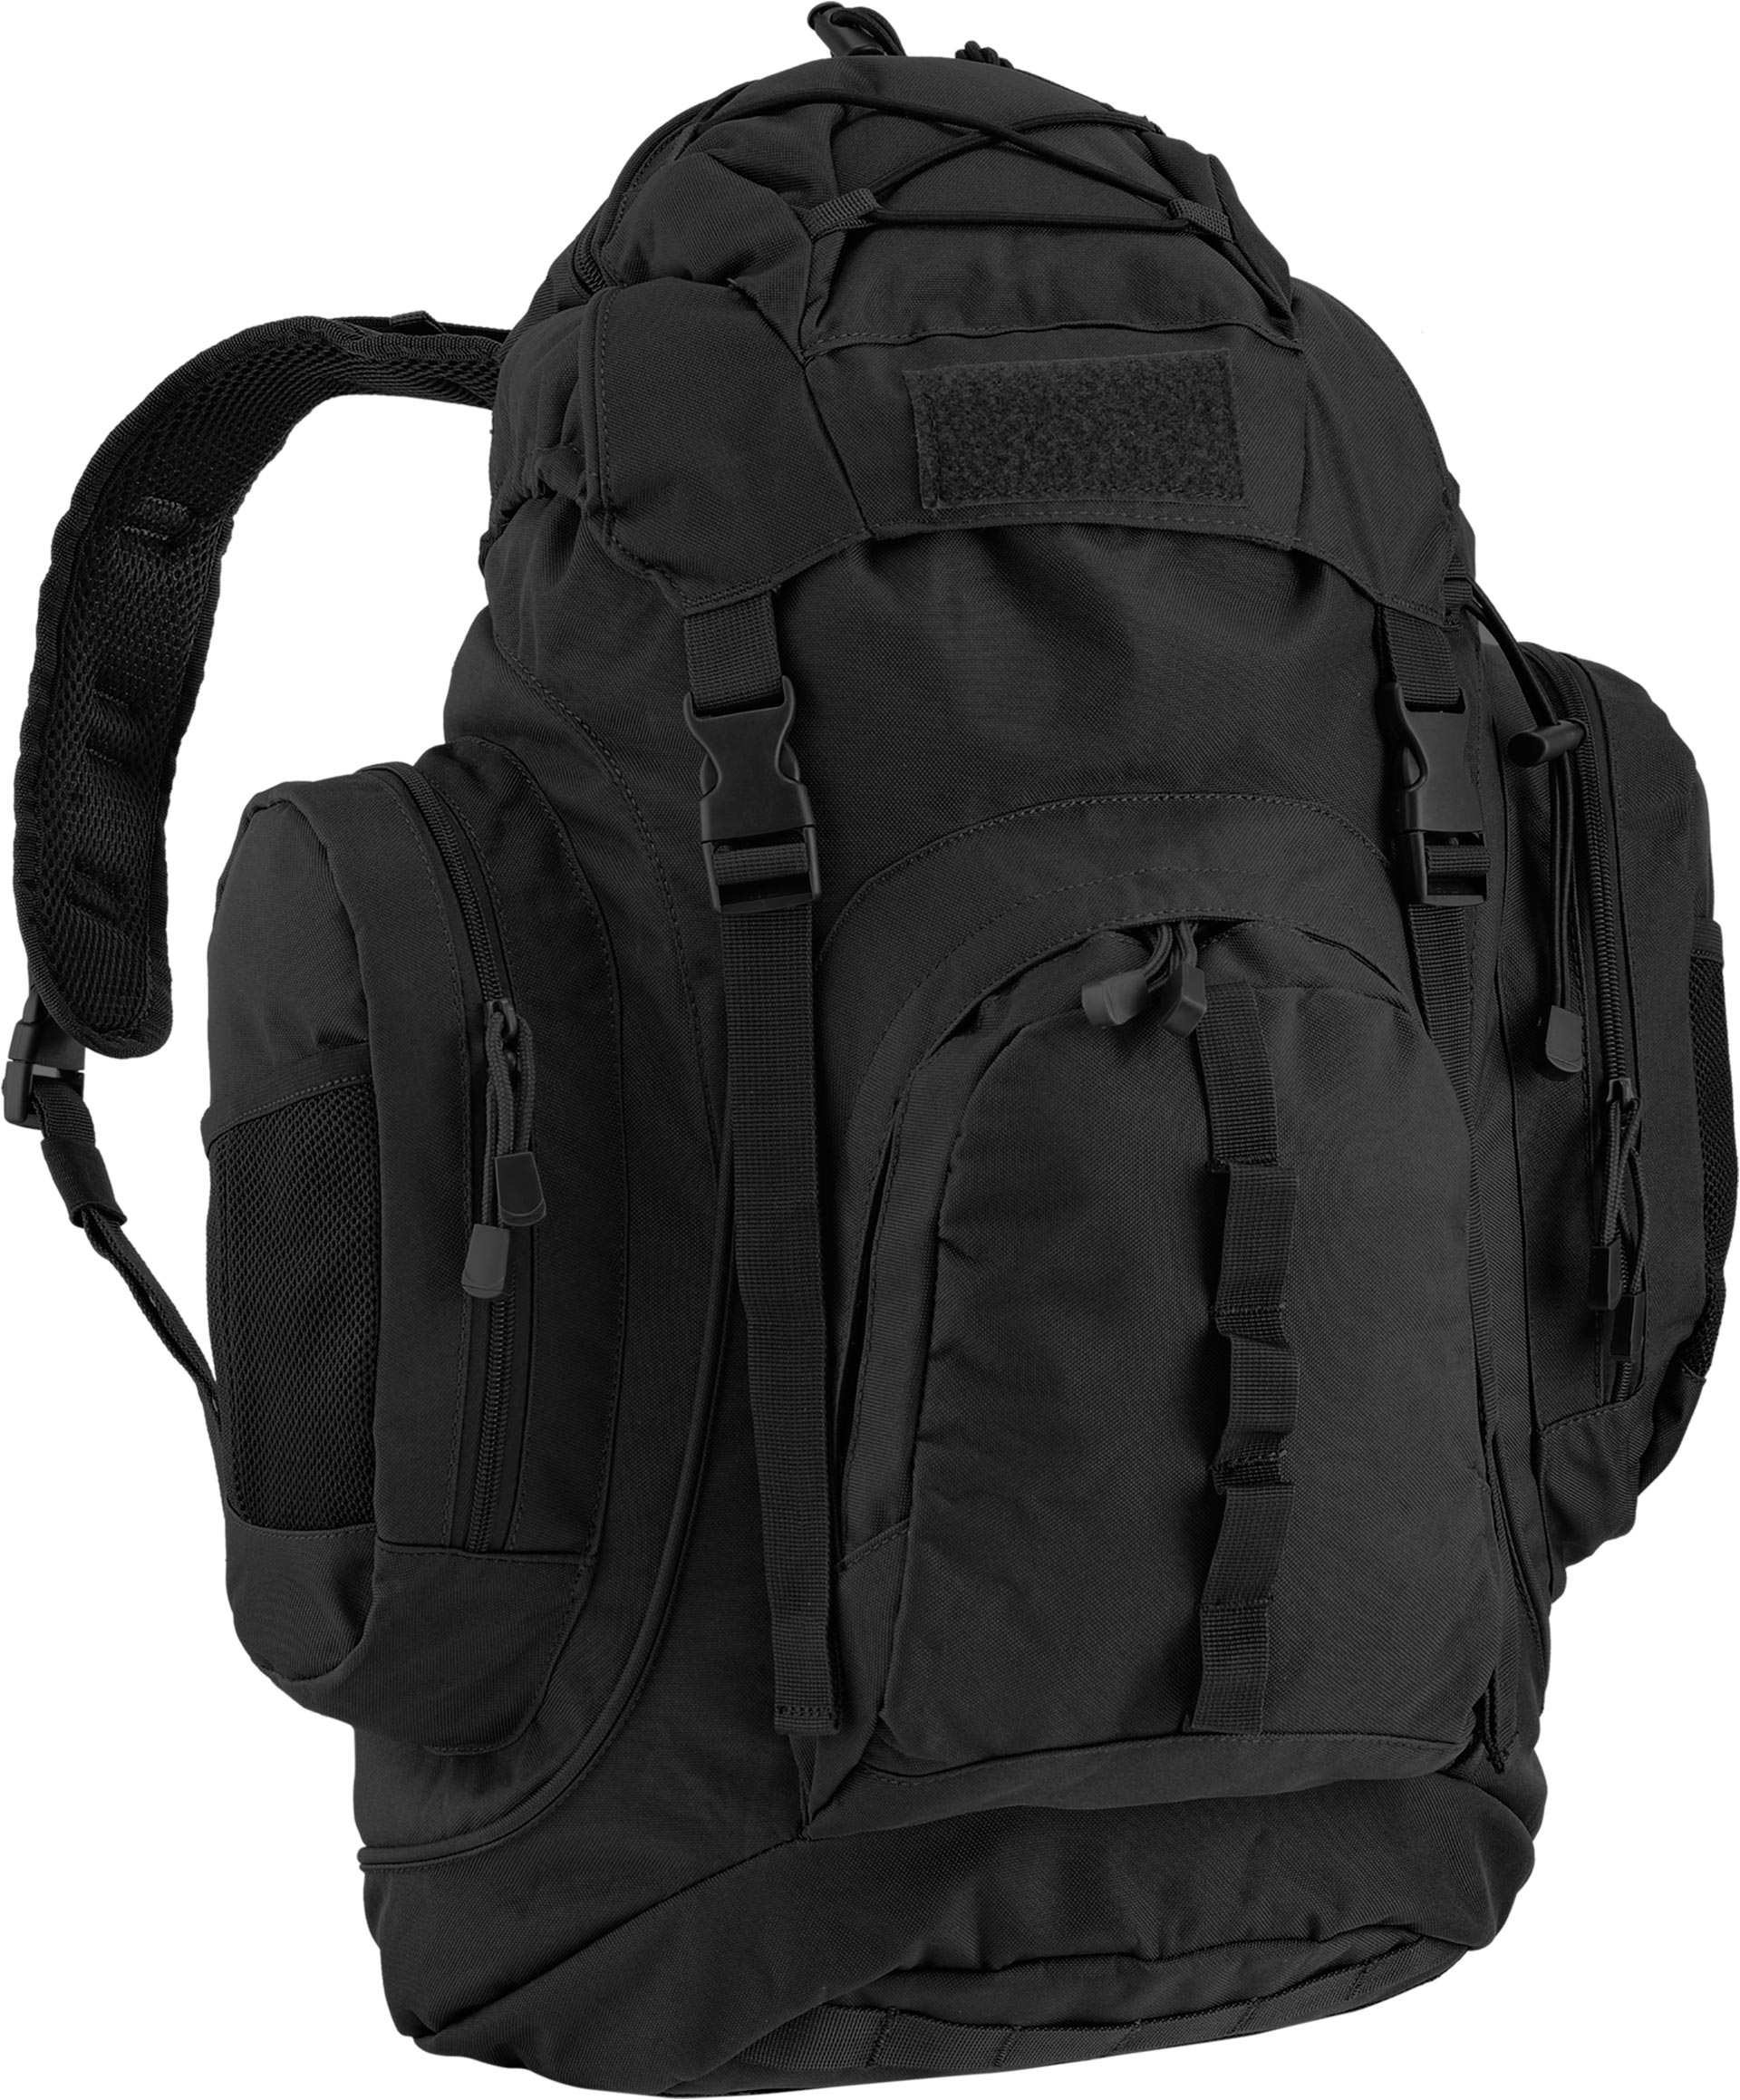 DEFCON 5 TACTICAL ASSAULT BACKPACK HYDRO COMPATIBILE